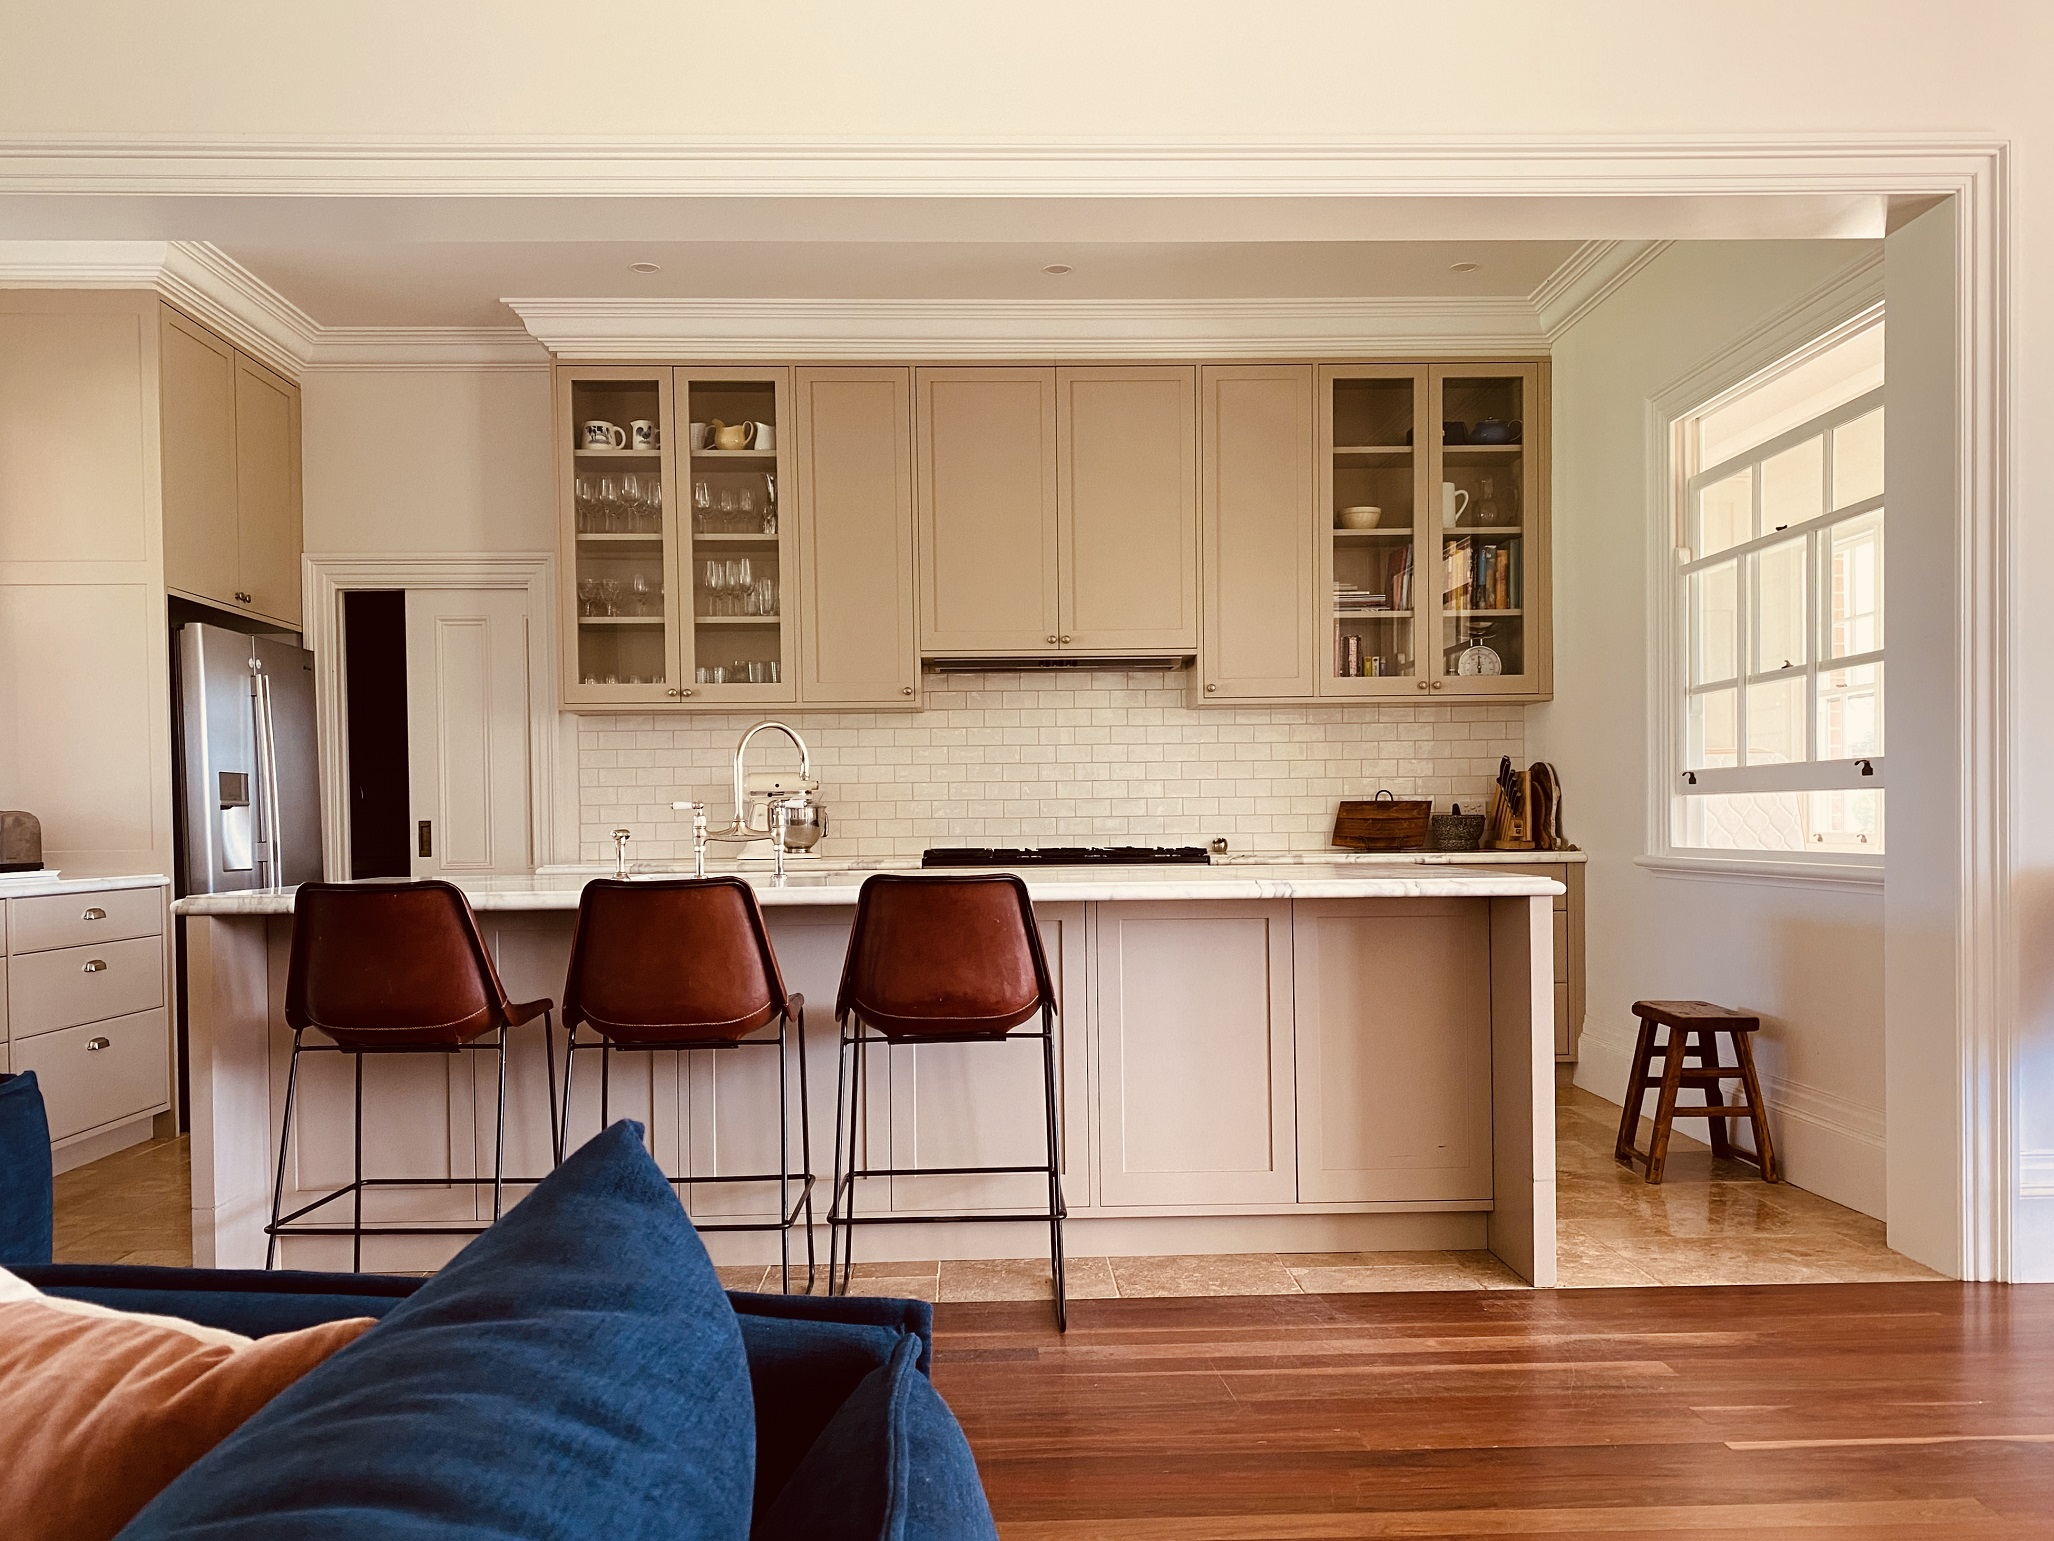 Kitchen Interior Design Bar Stools Architecture